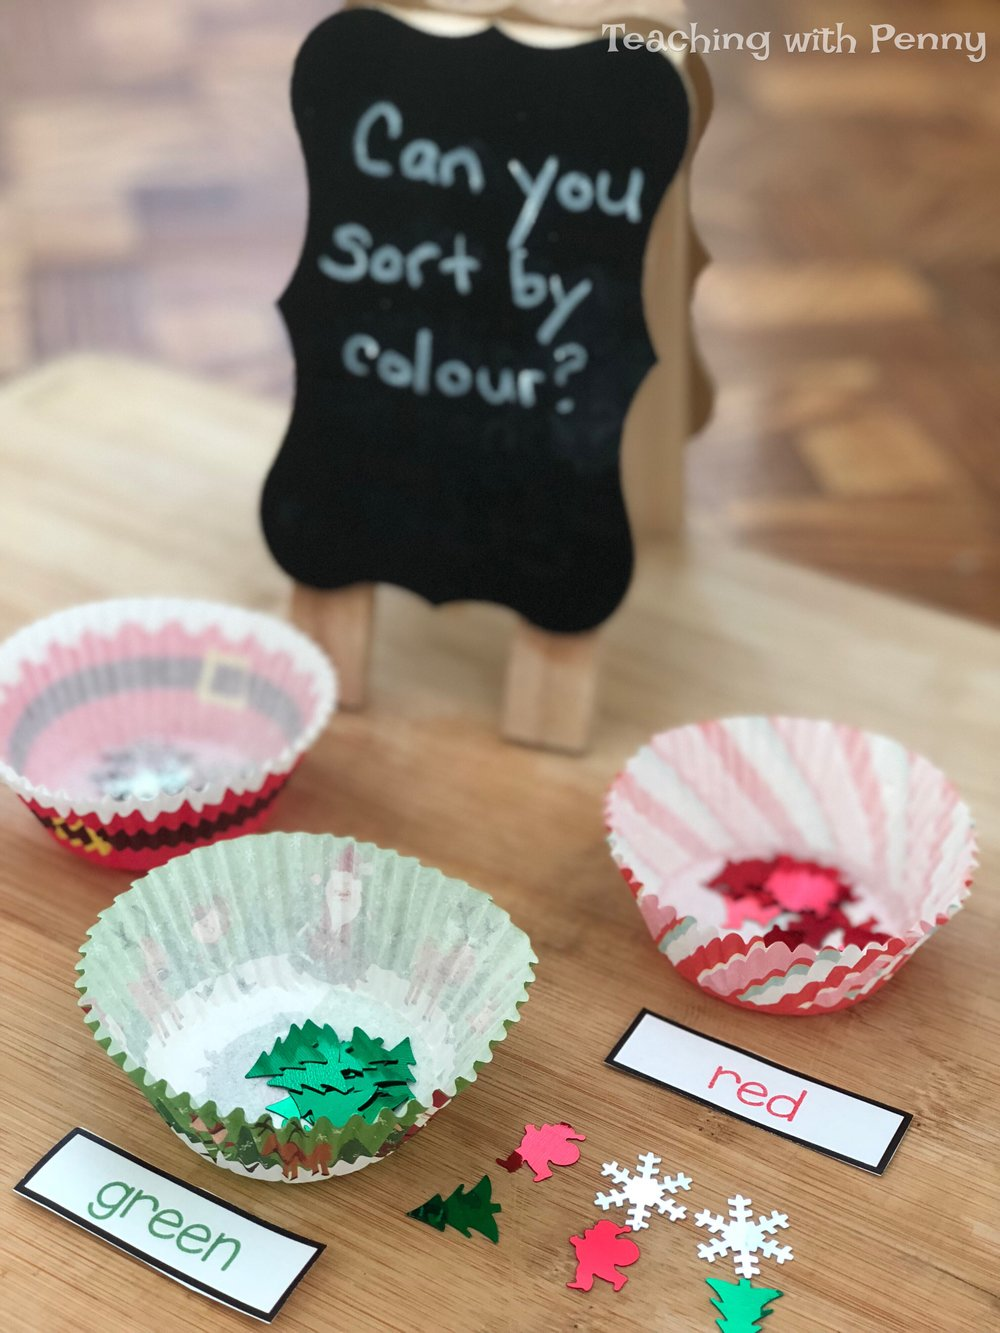 These muffin cups are perfect for sorting. This center is so easy all I needed to do was put out the confetti, stick on the labels and the muffin cups and it was good to go! You can find similar confetti on Amazon  here .